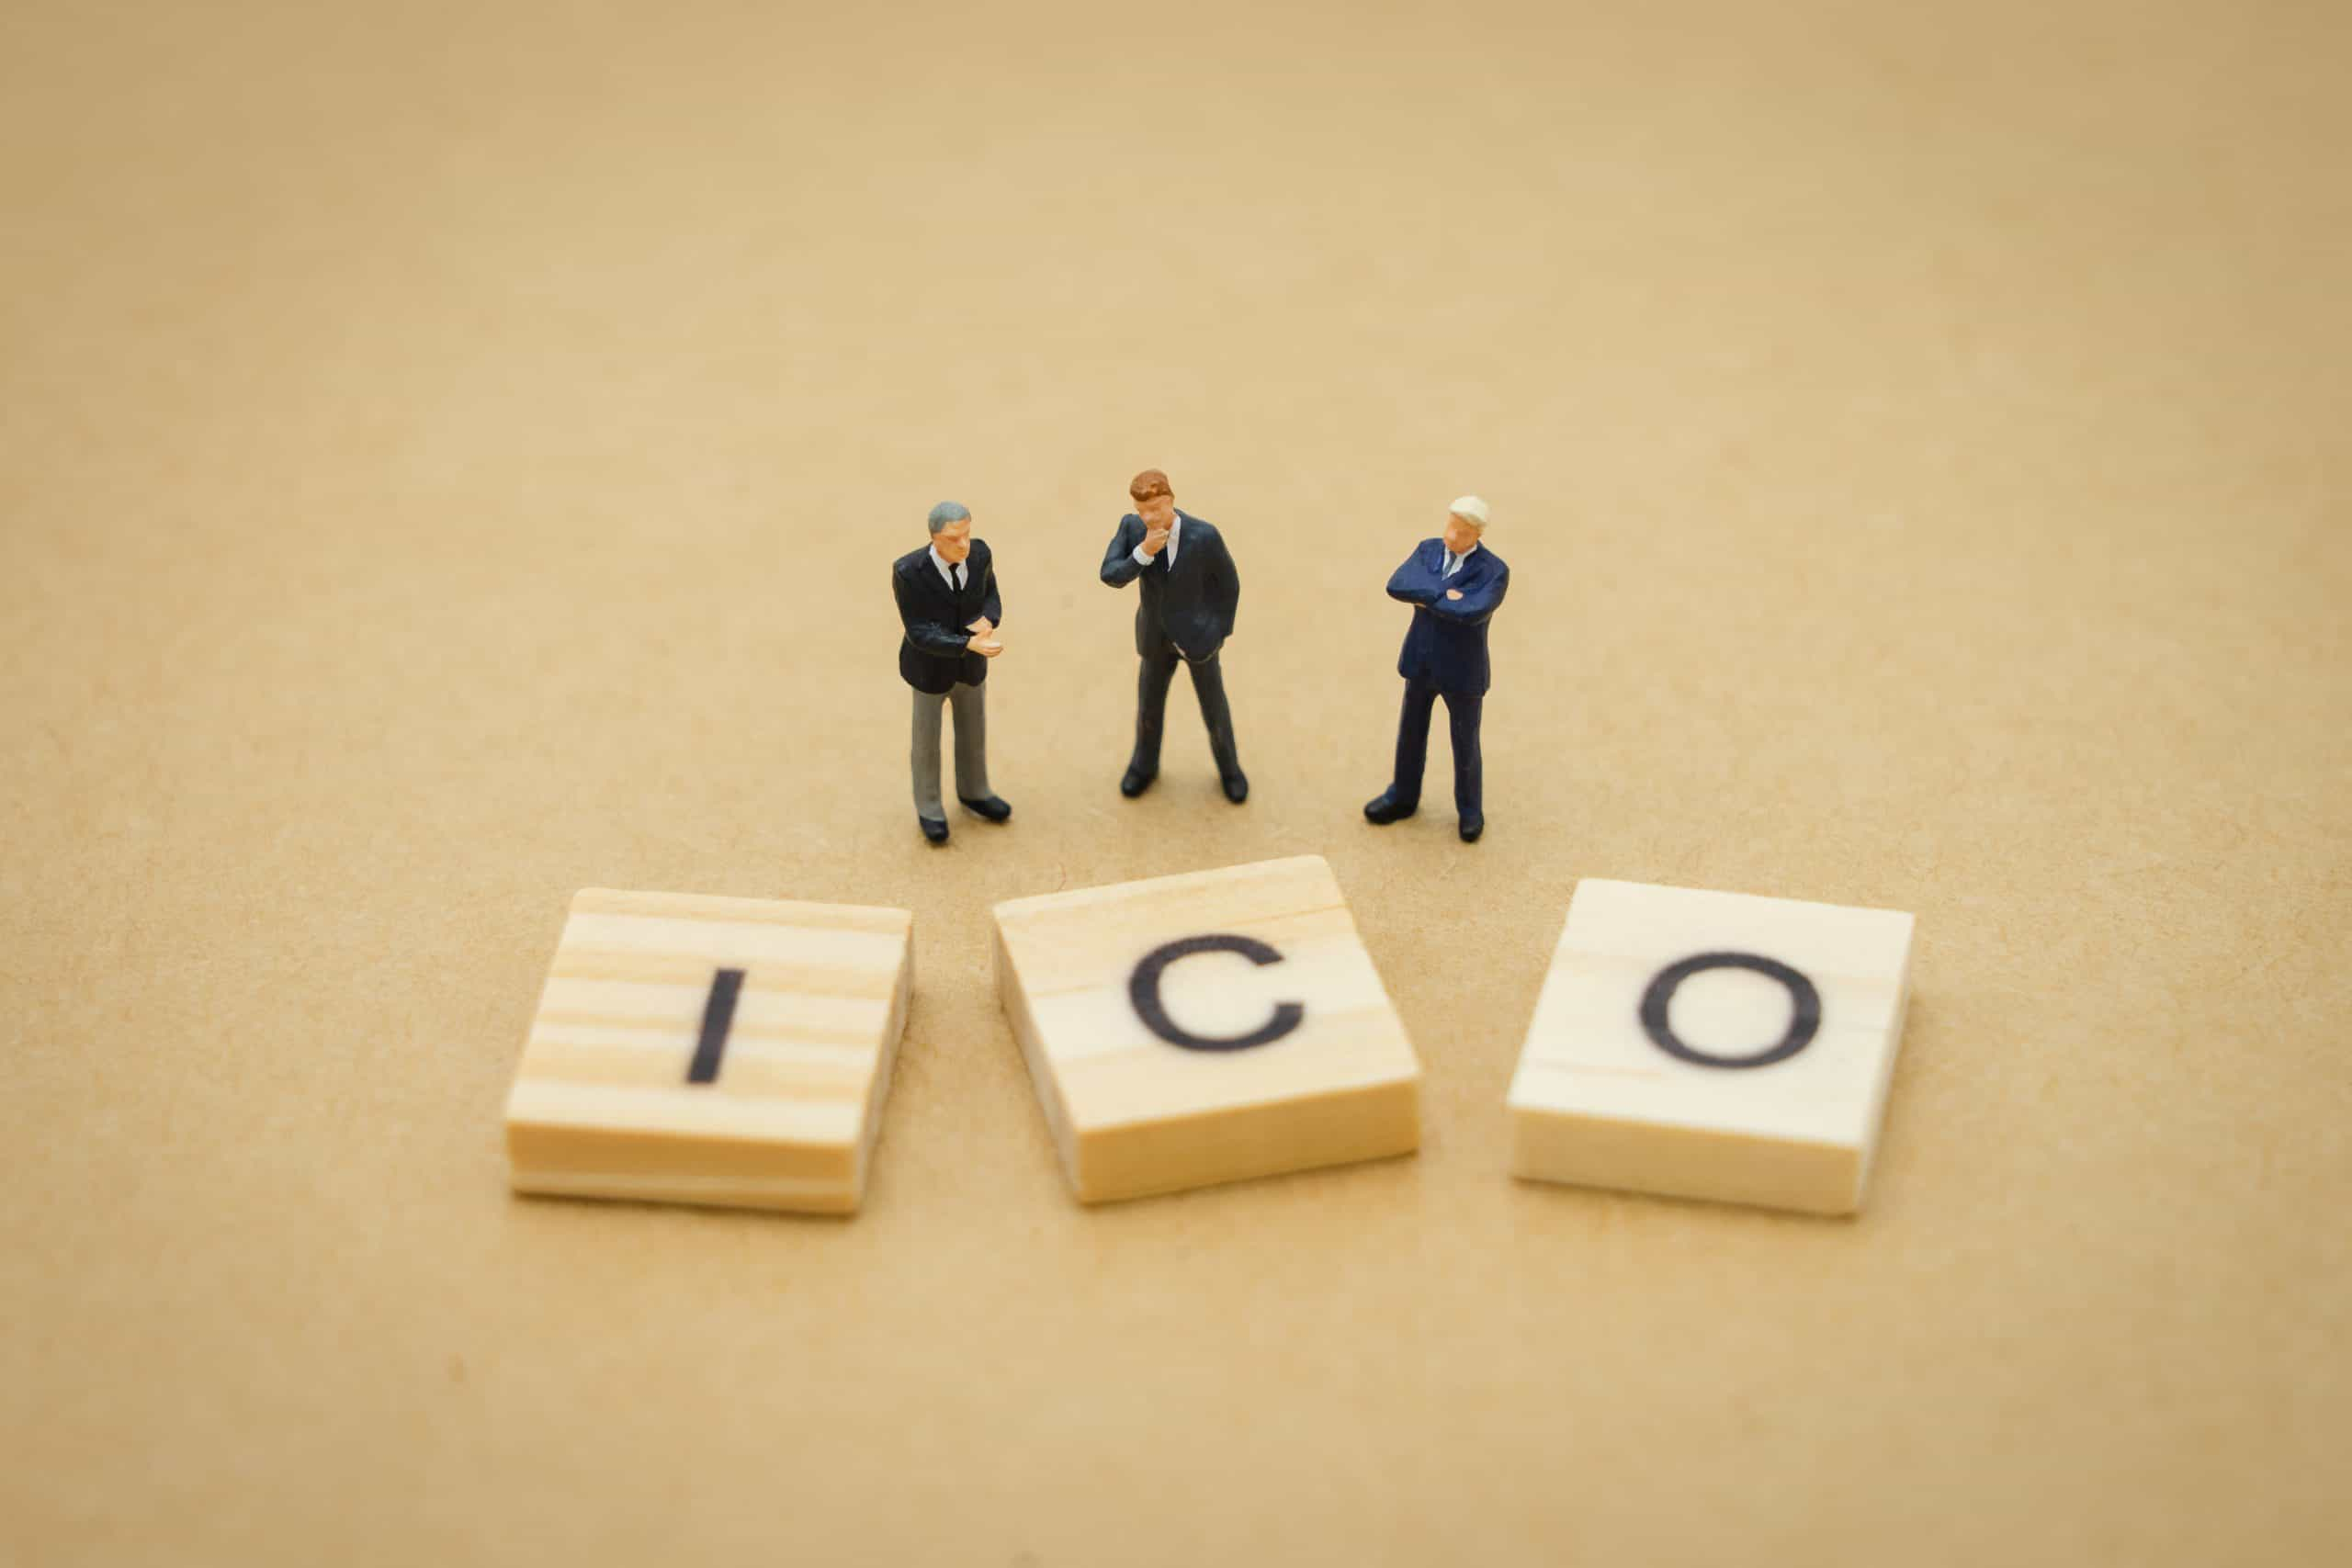 Miniature people businessmen standing with wood word icon